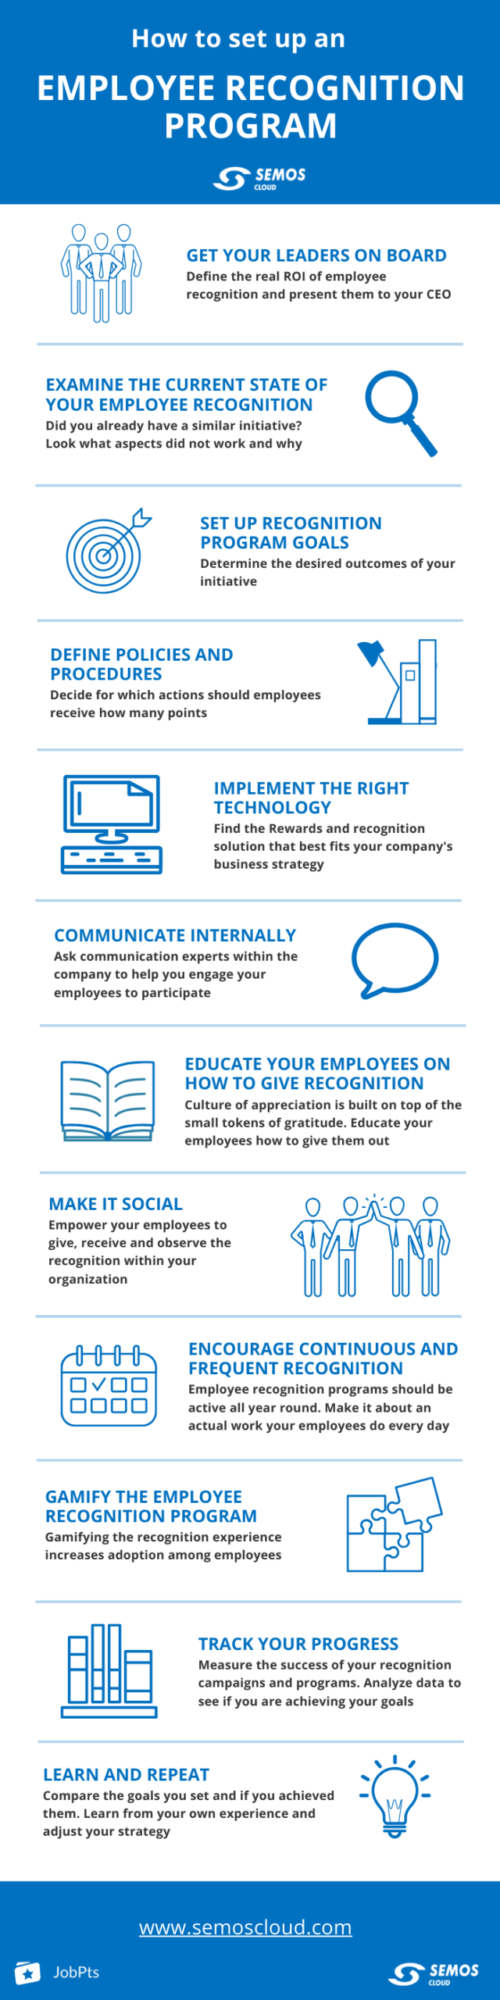 employee recognition best practices